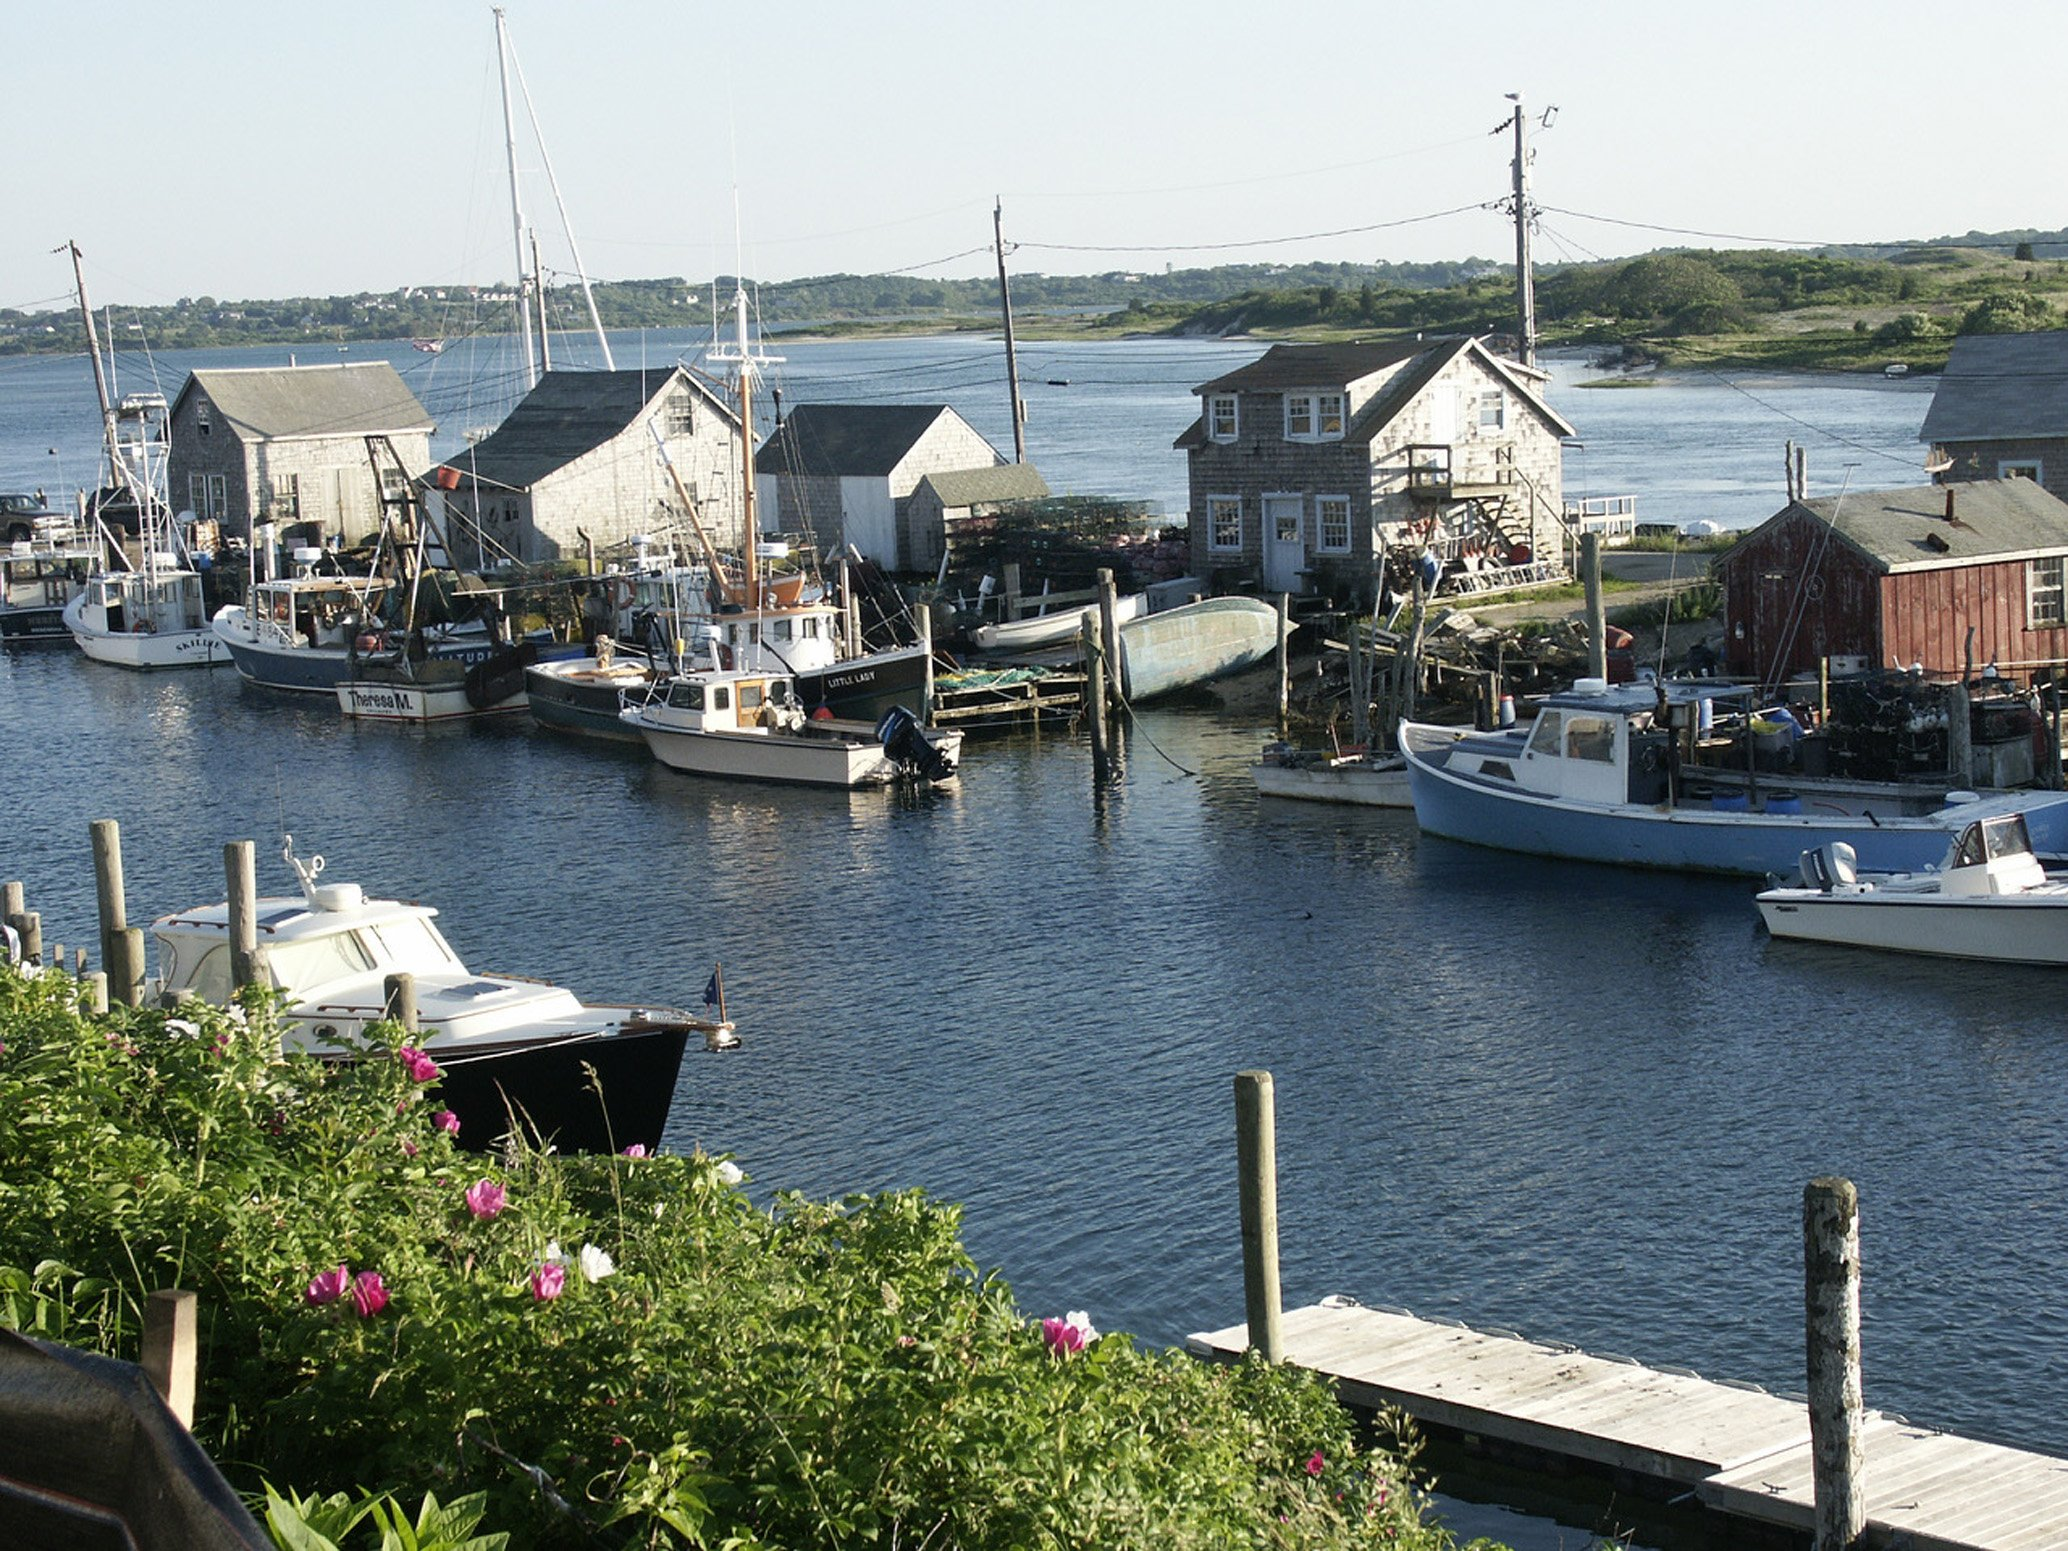 Boats dock in the tiny fishing village of Menemsha on Martha's Vineyard. Photo: Heather Goff